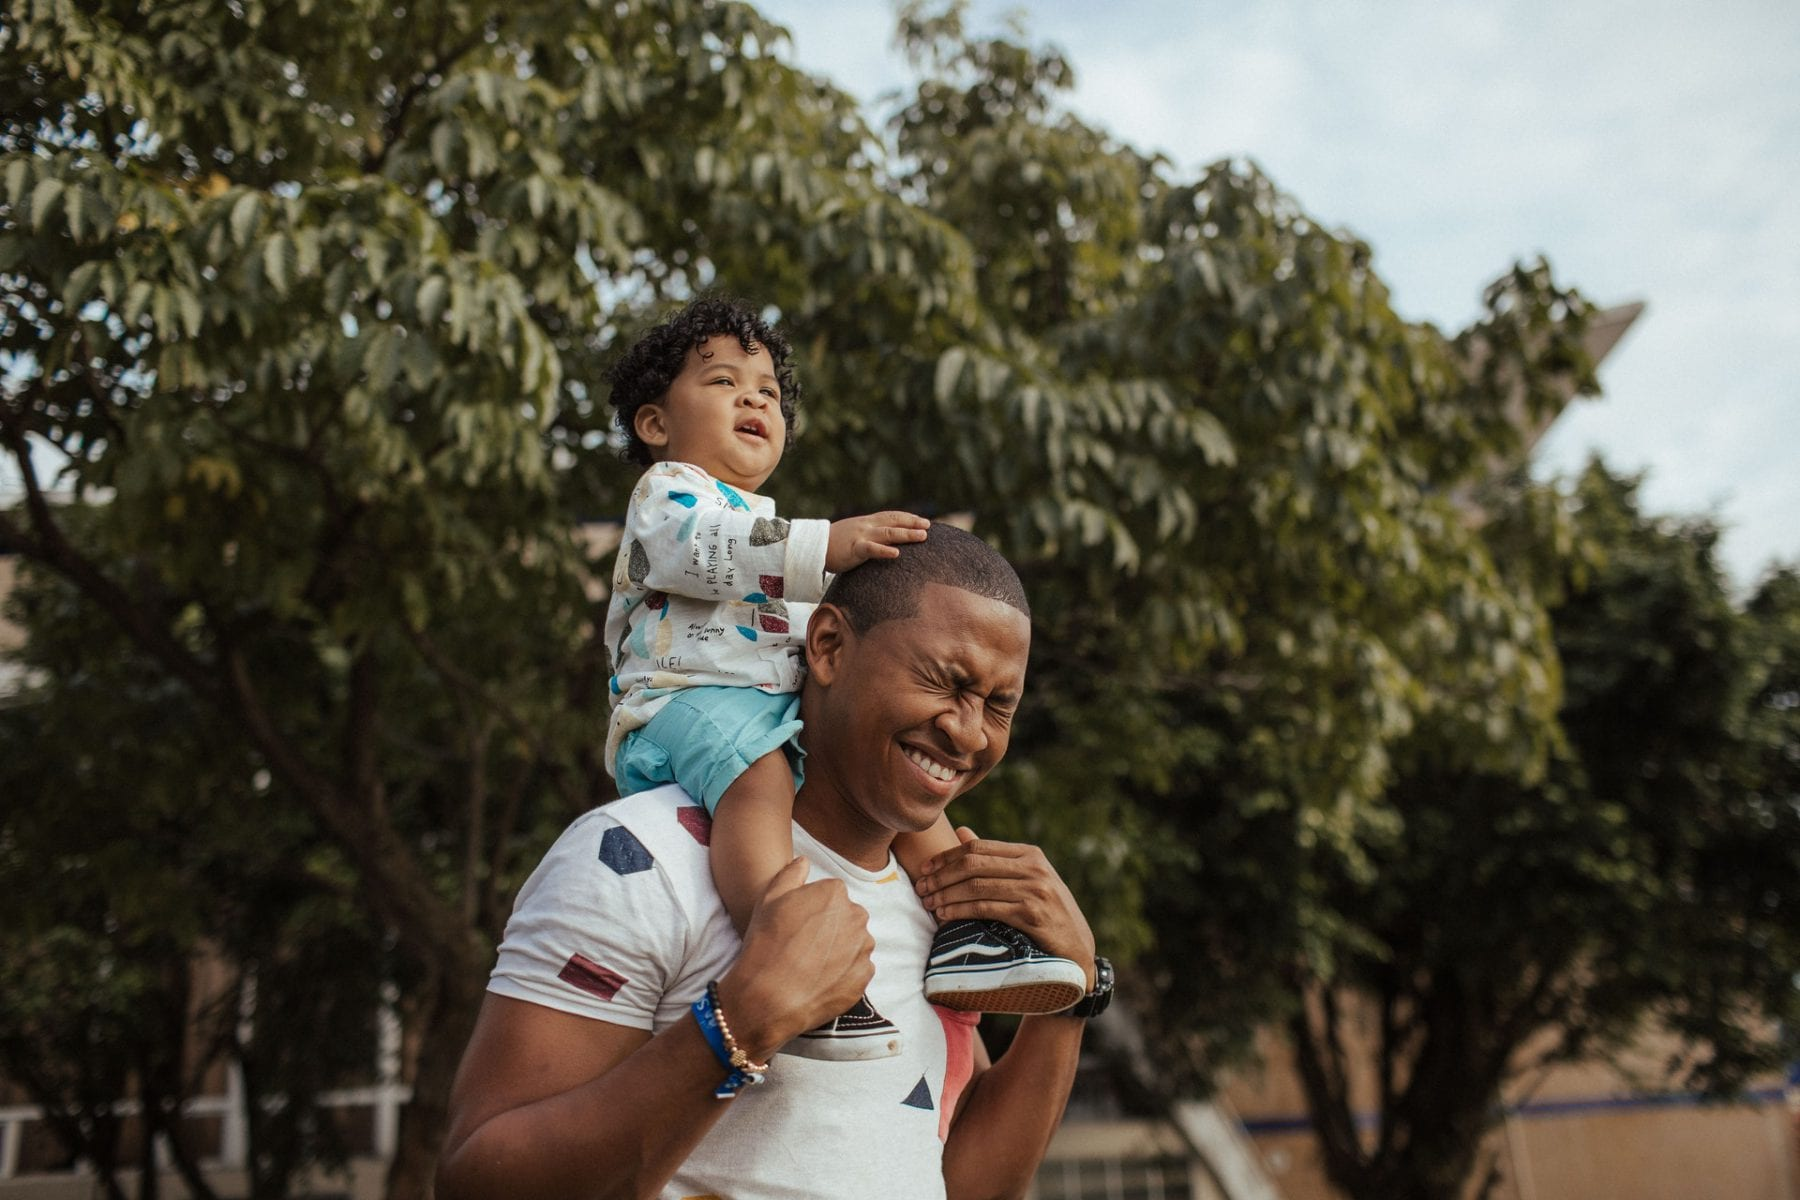 Man carrying child on his shoulders